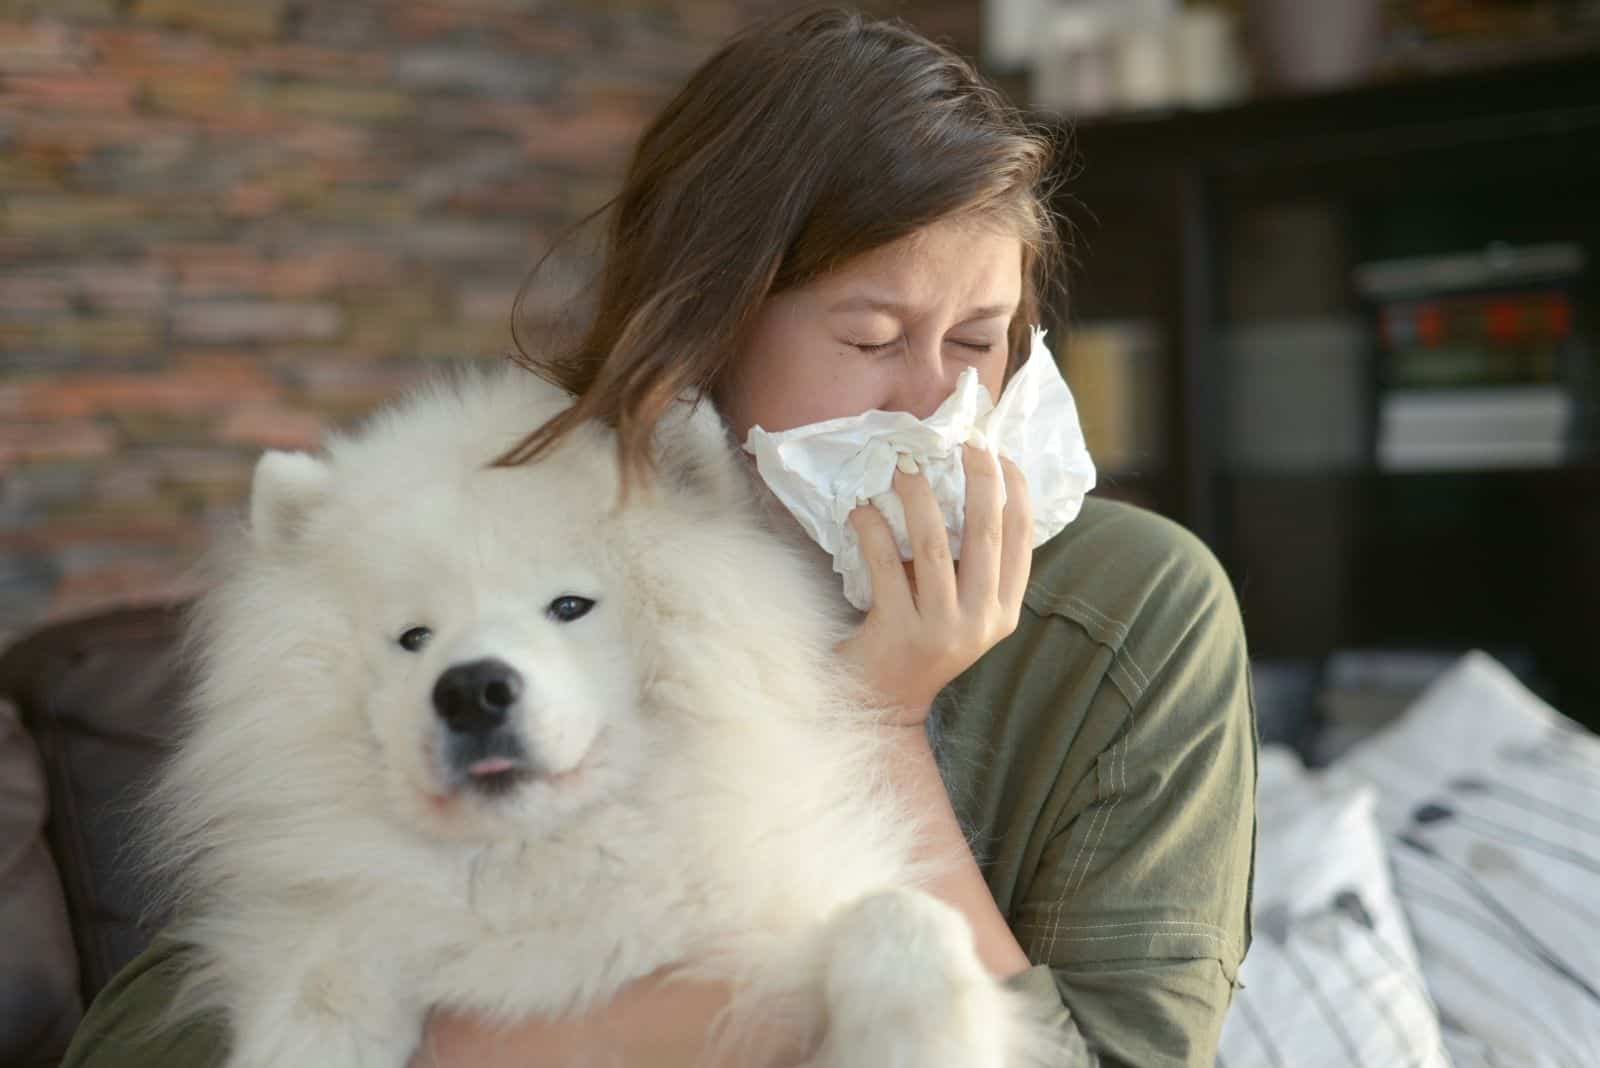 woman with allergies sneezing carrying a furry white dog